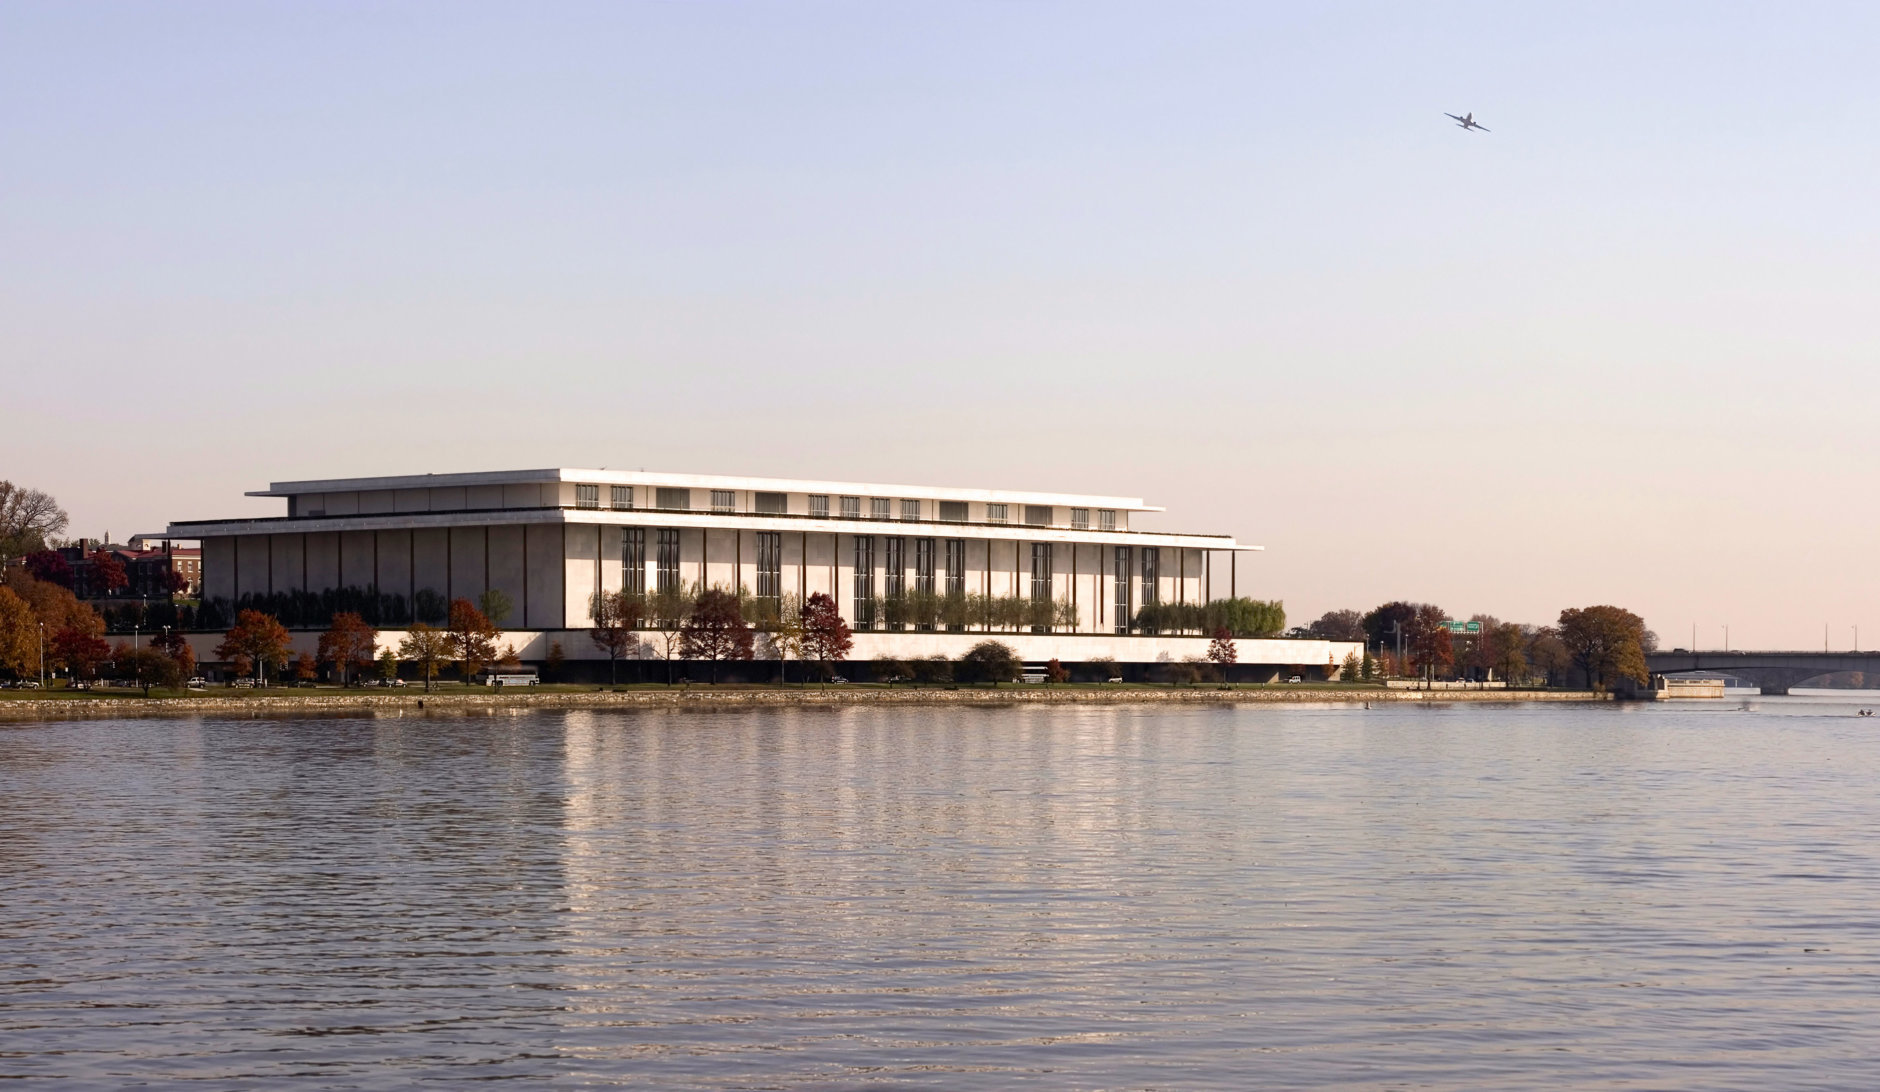 Kennedy Center from the Potomac